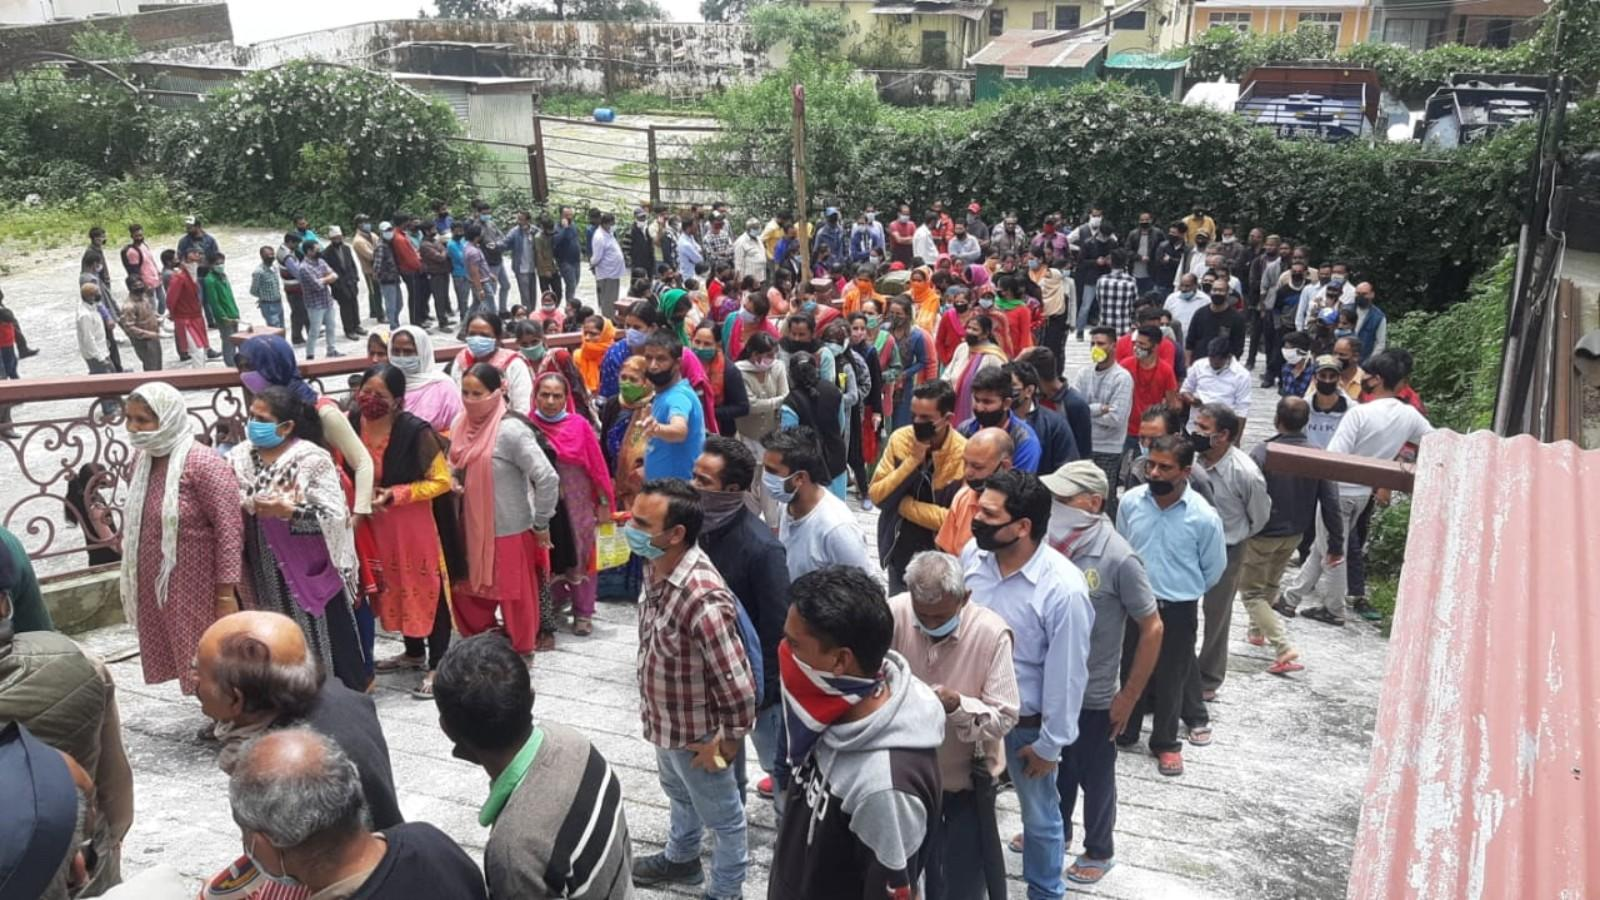 crowds-violate-social-distancing-norms-during-ration-distributing-event-in-mussoorie